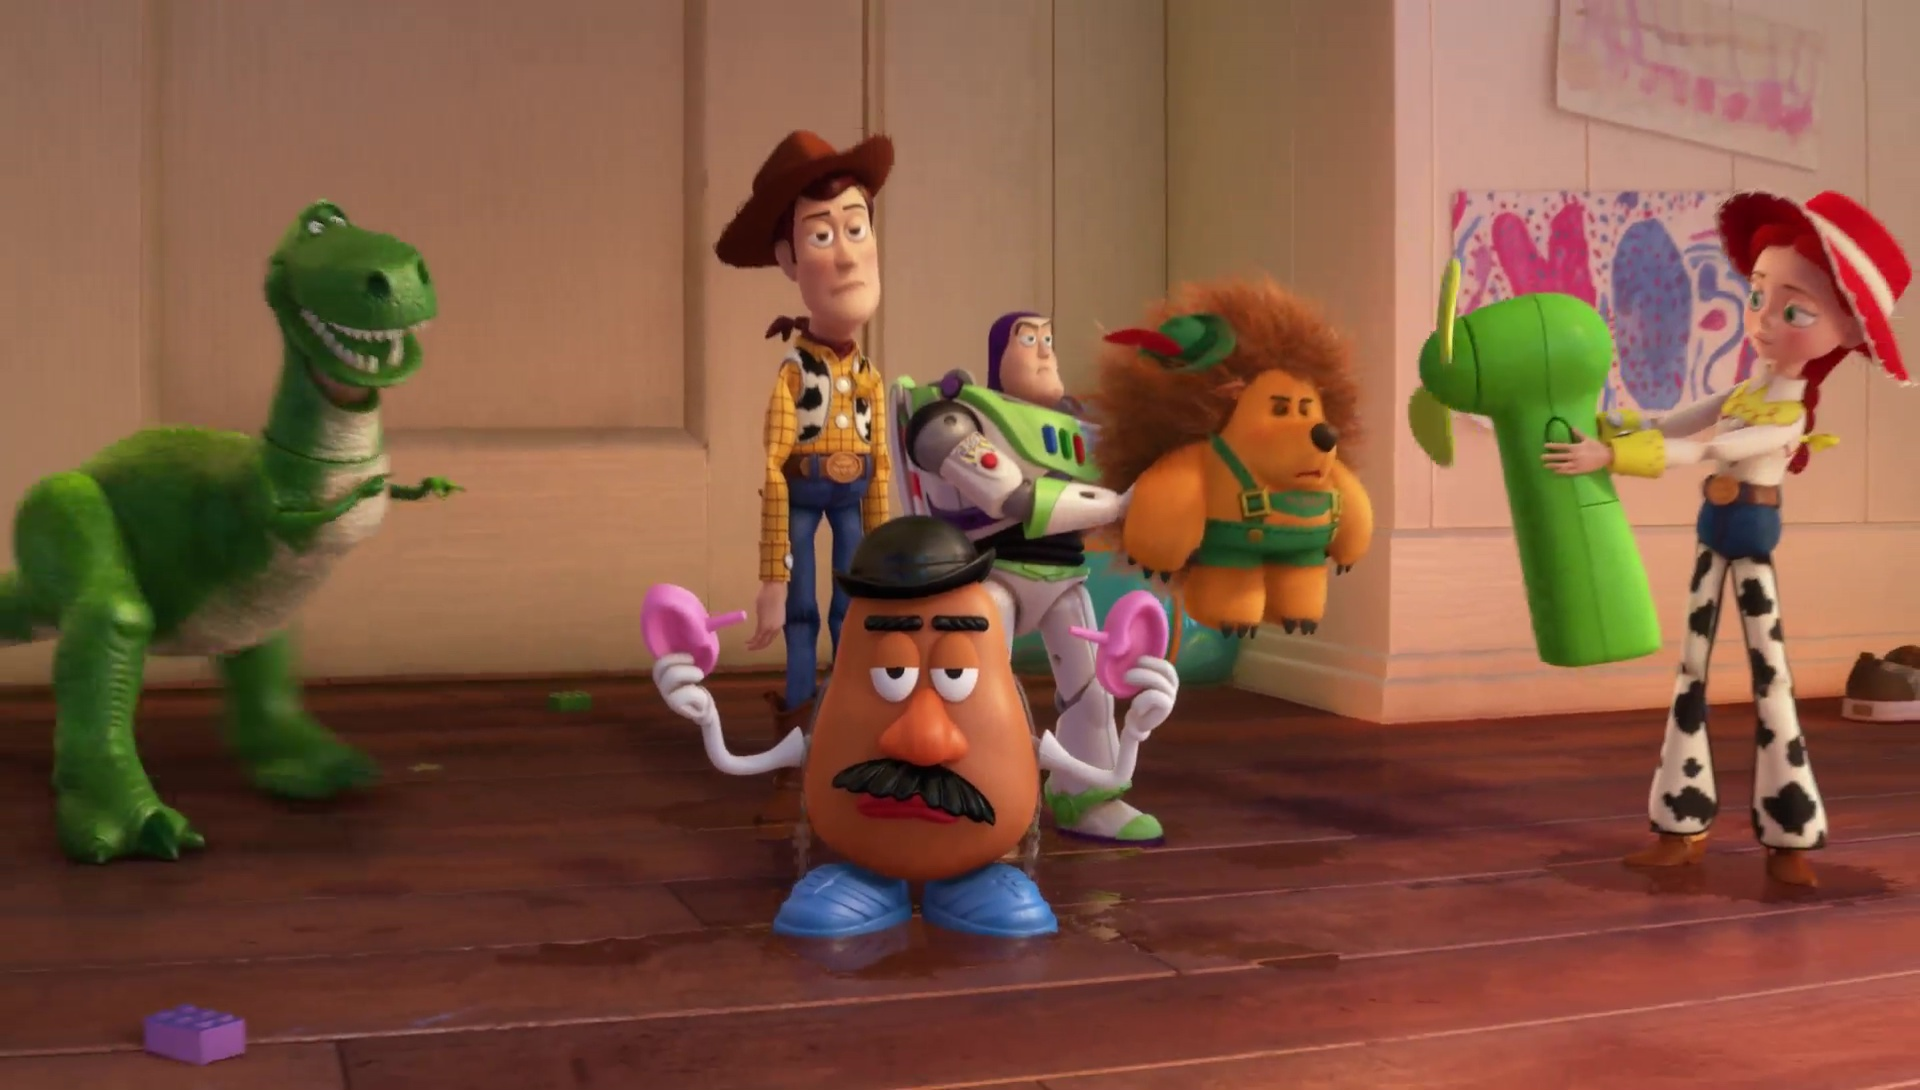 La brosse personnage dans toy story 3 pixar planet fr - Madame patate toy story ...